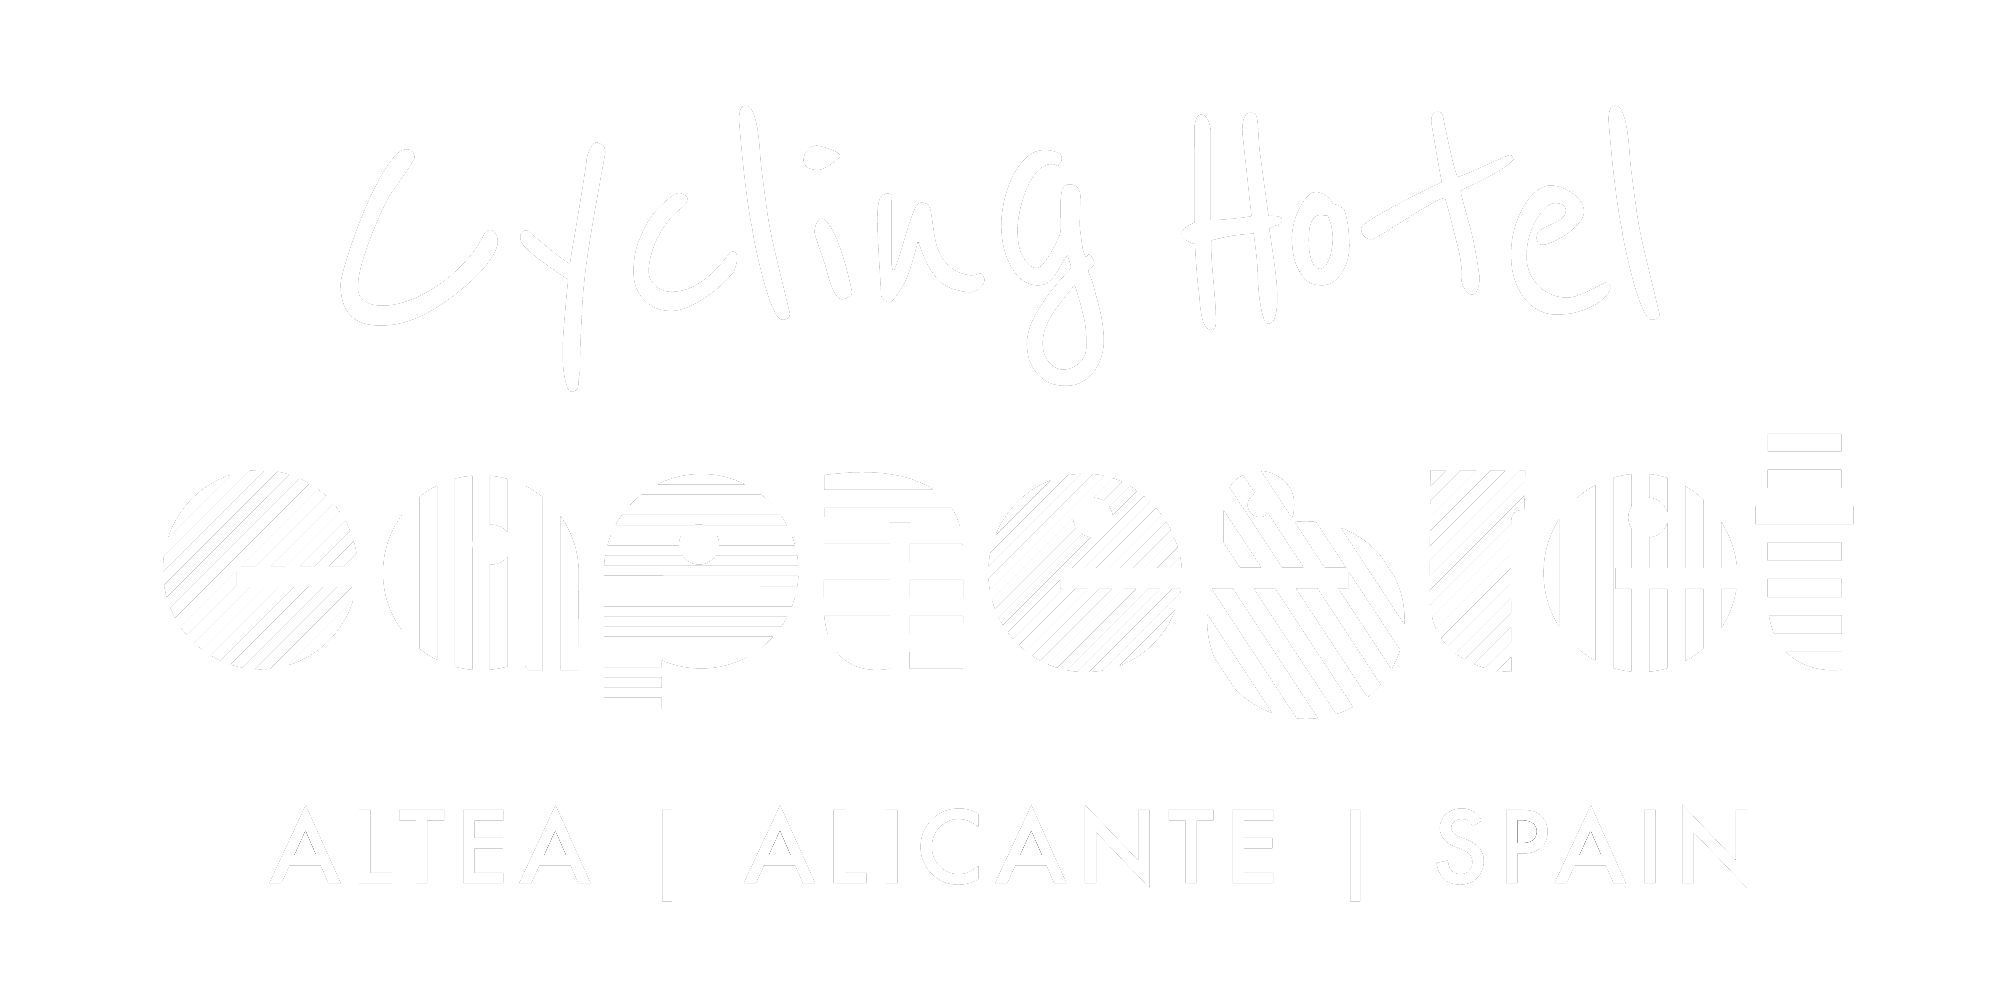 Cycling Hotel